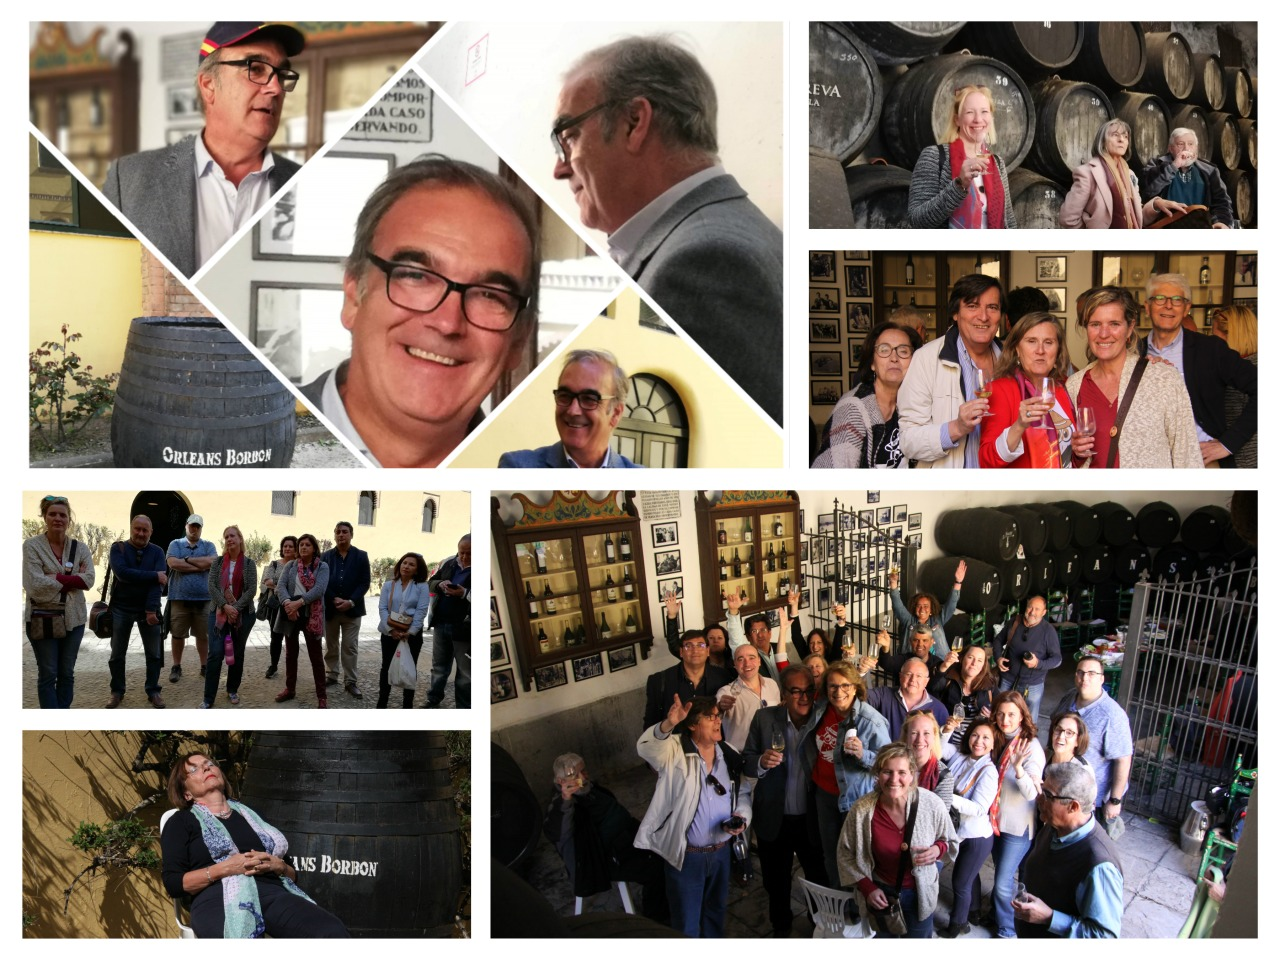 Las aventuras de los Sherry Explorers en Sanlúcar y descubriendo la Manzanilla!!/ The adventures of the Sherry Explorers in Sanlúcar, while they discovered Manzanilla wine!